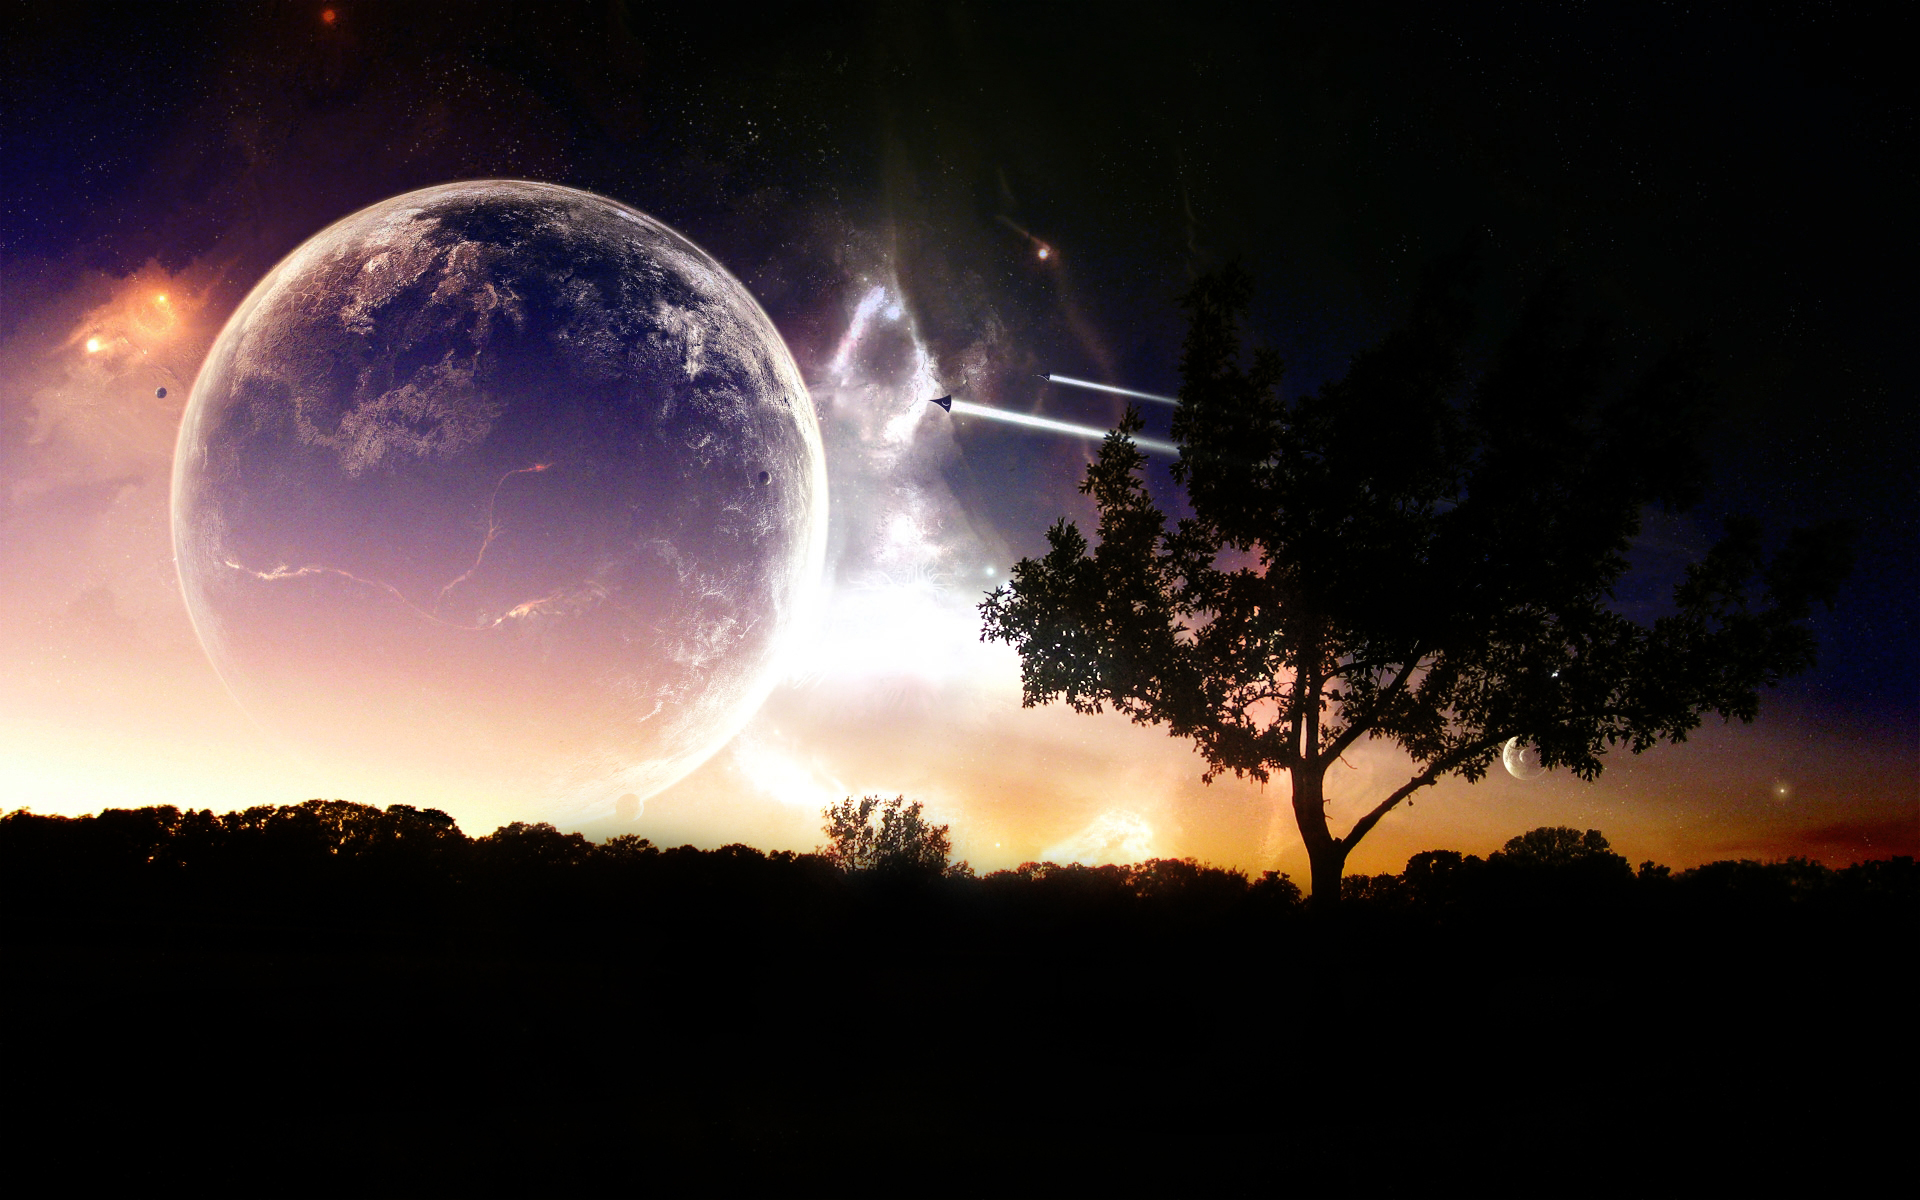 Sci Fi - Planet Rise  - Earth - Tree - Planet - Spaceships - Stars - Atmosphere Wallpaper